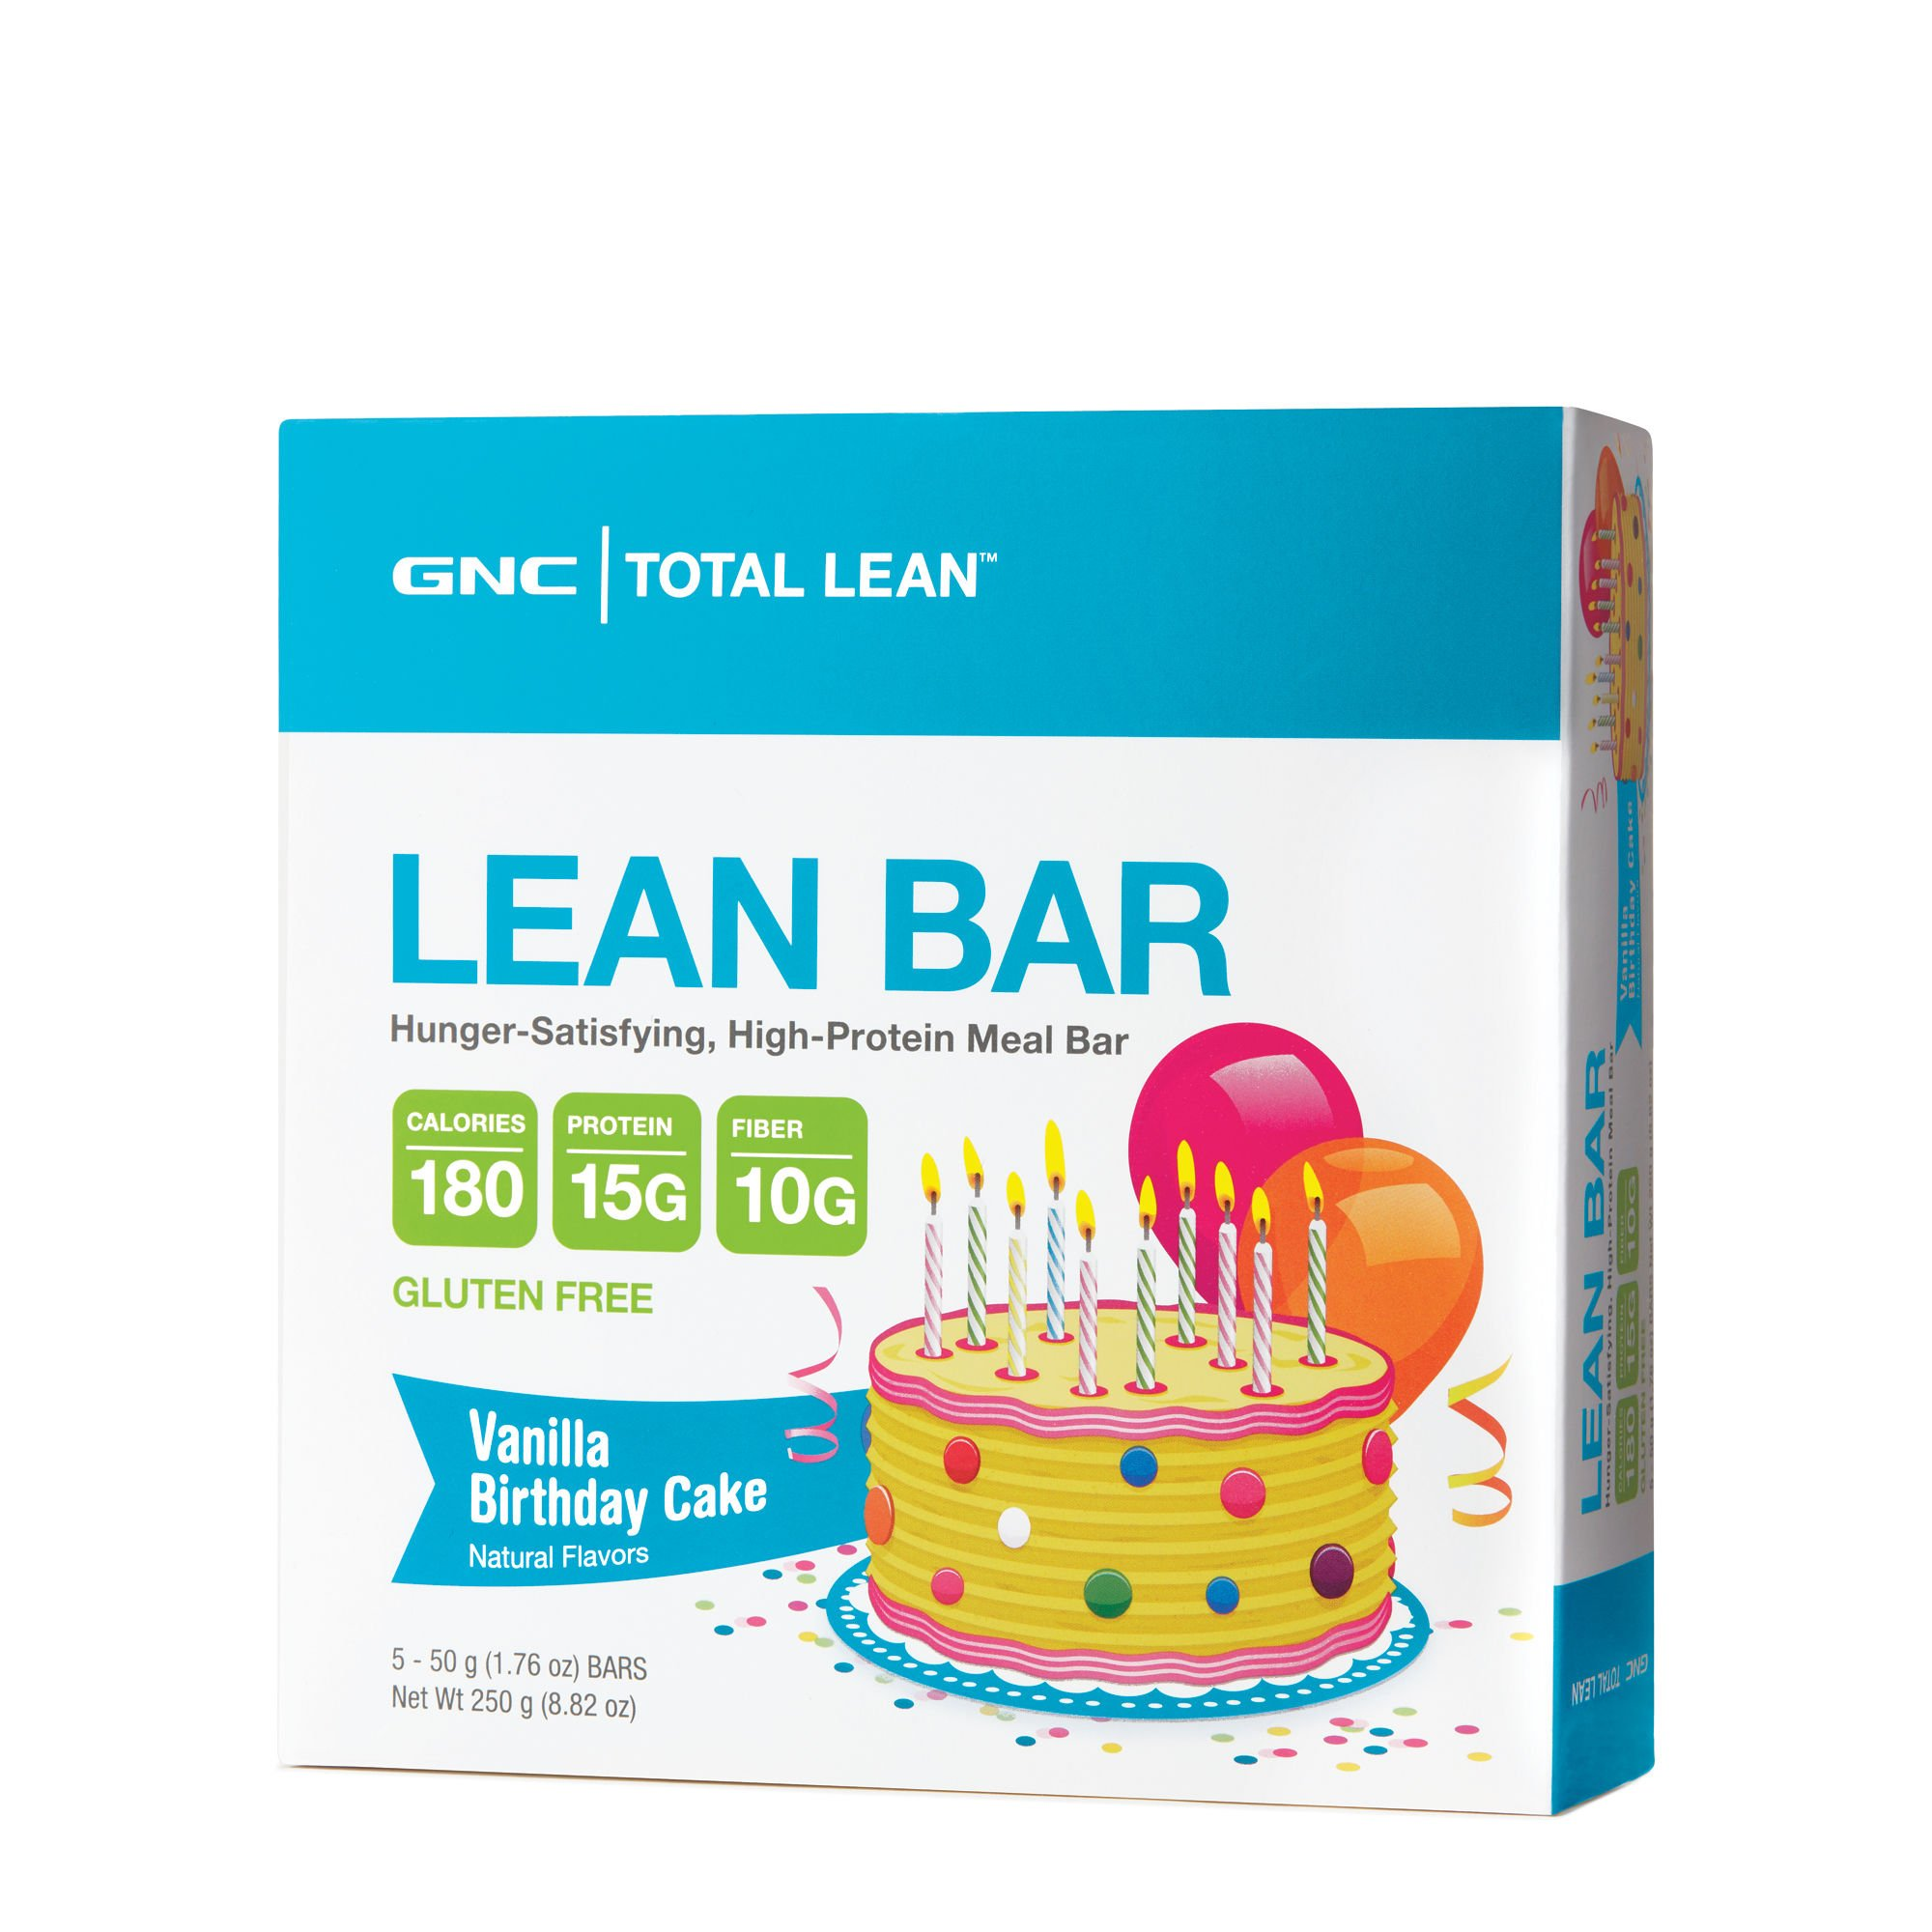 GNC Total Lean Lean Bar, Hunger Satisfying High in Protein, Vanilla Birthday Cake